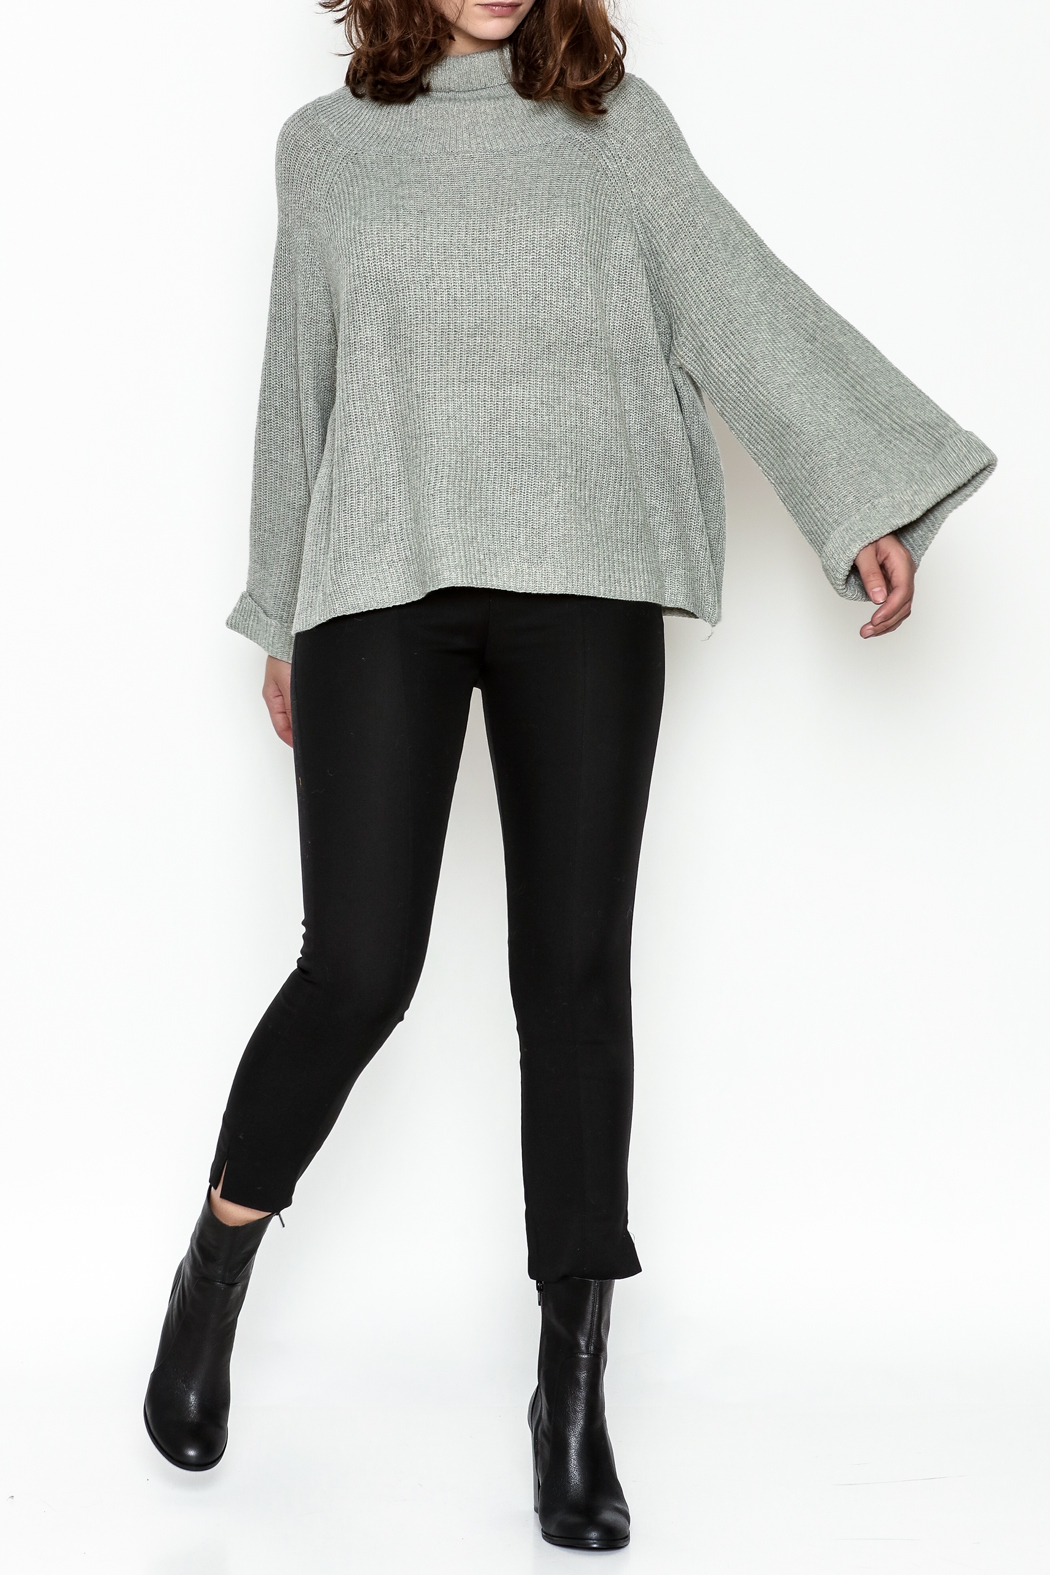 Laju Cowl Neck Sweater - Side Cropped Image